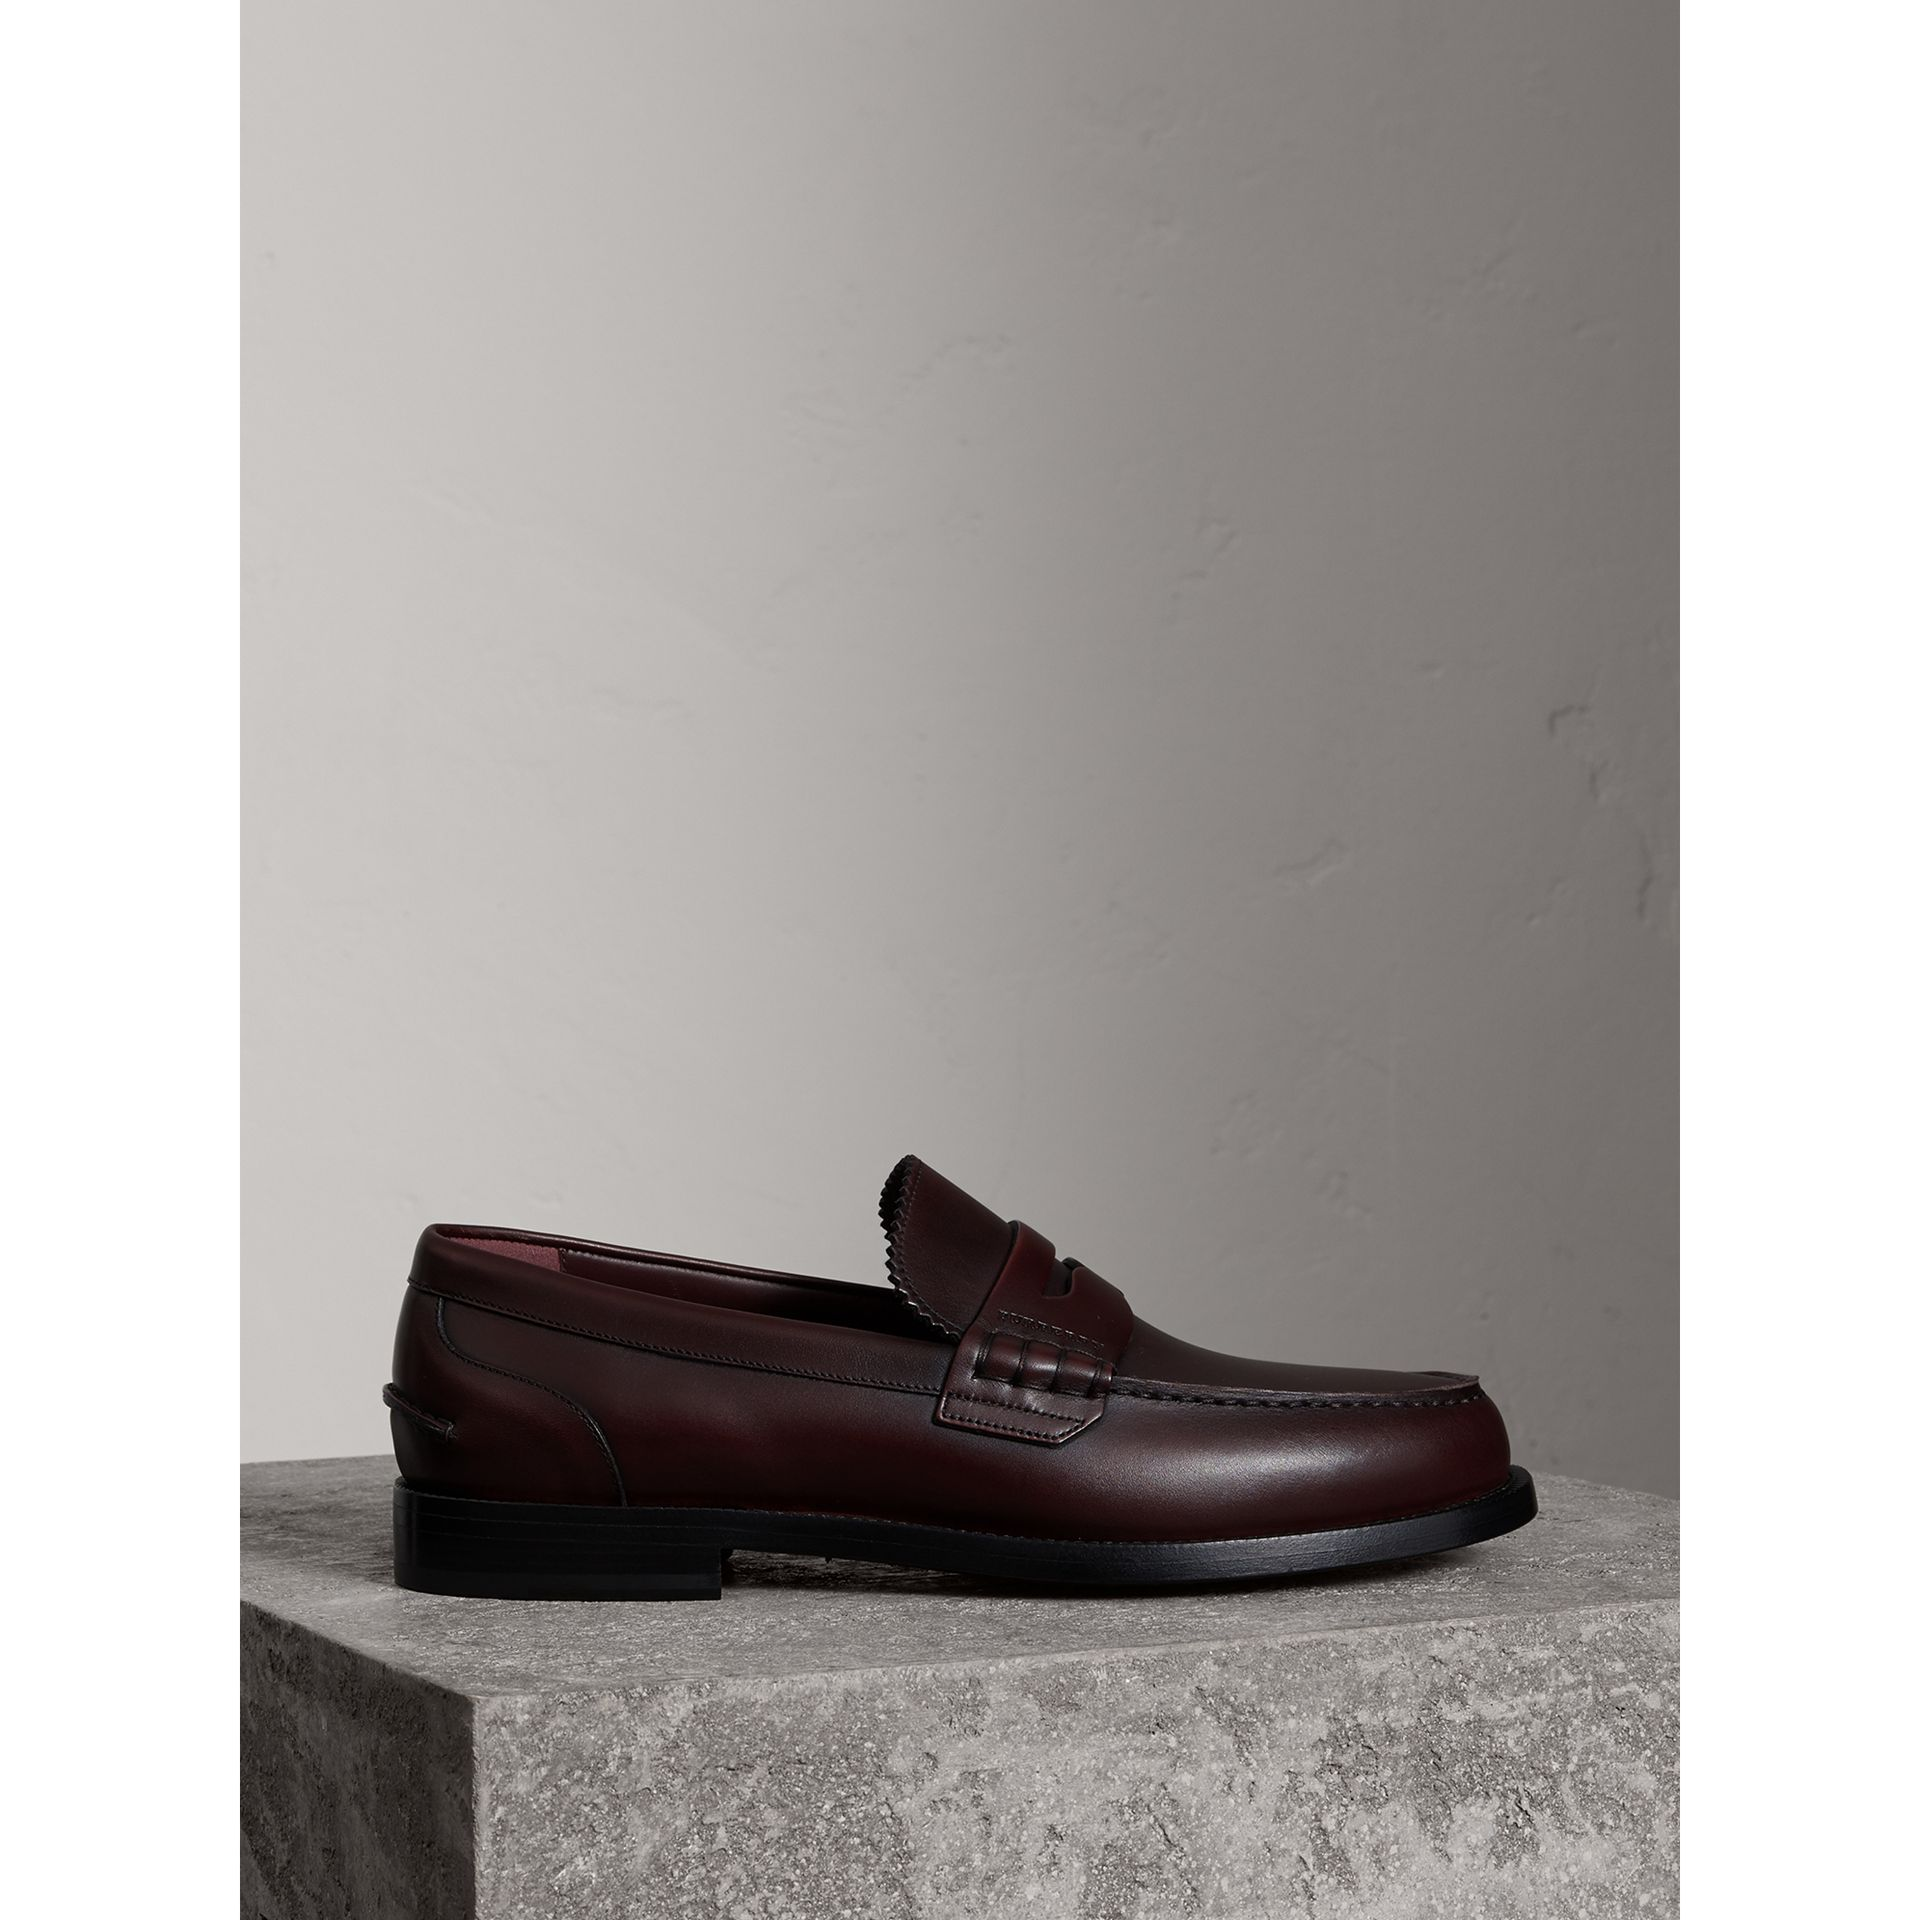 Burberry Bordeaux Leather Penny Loafers